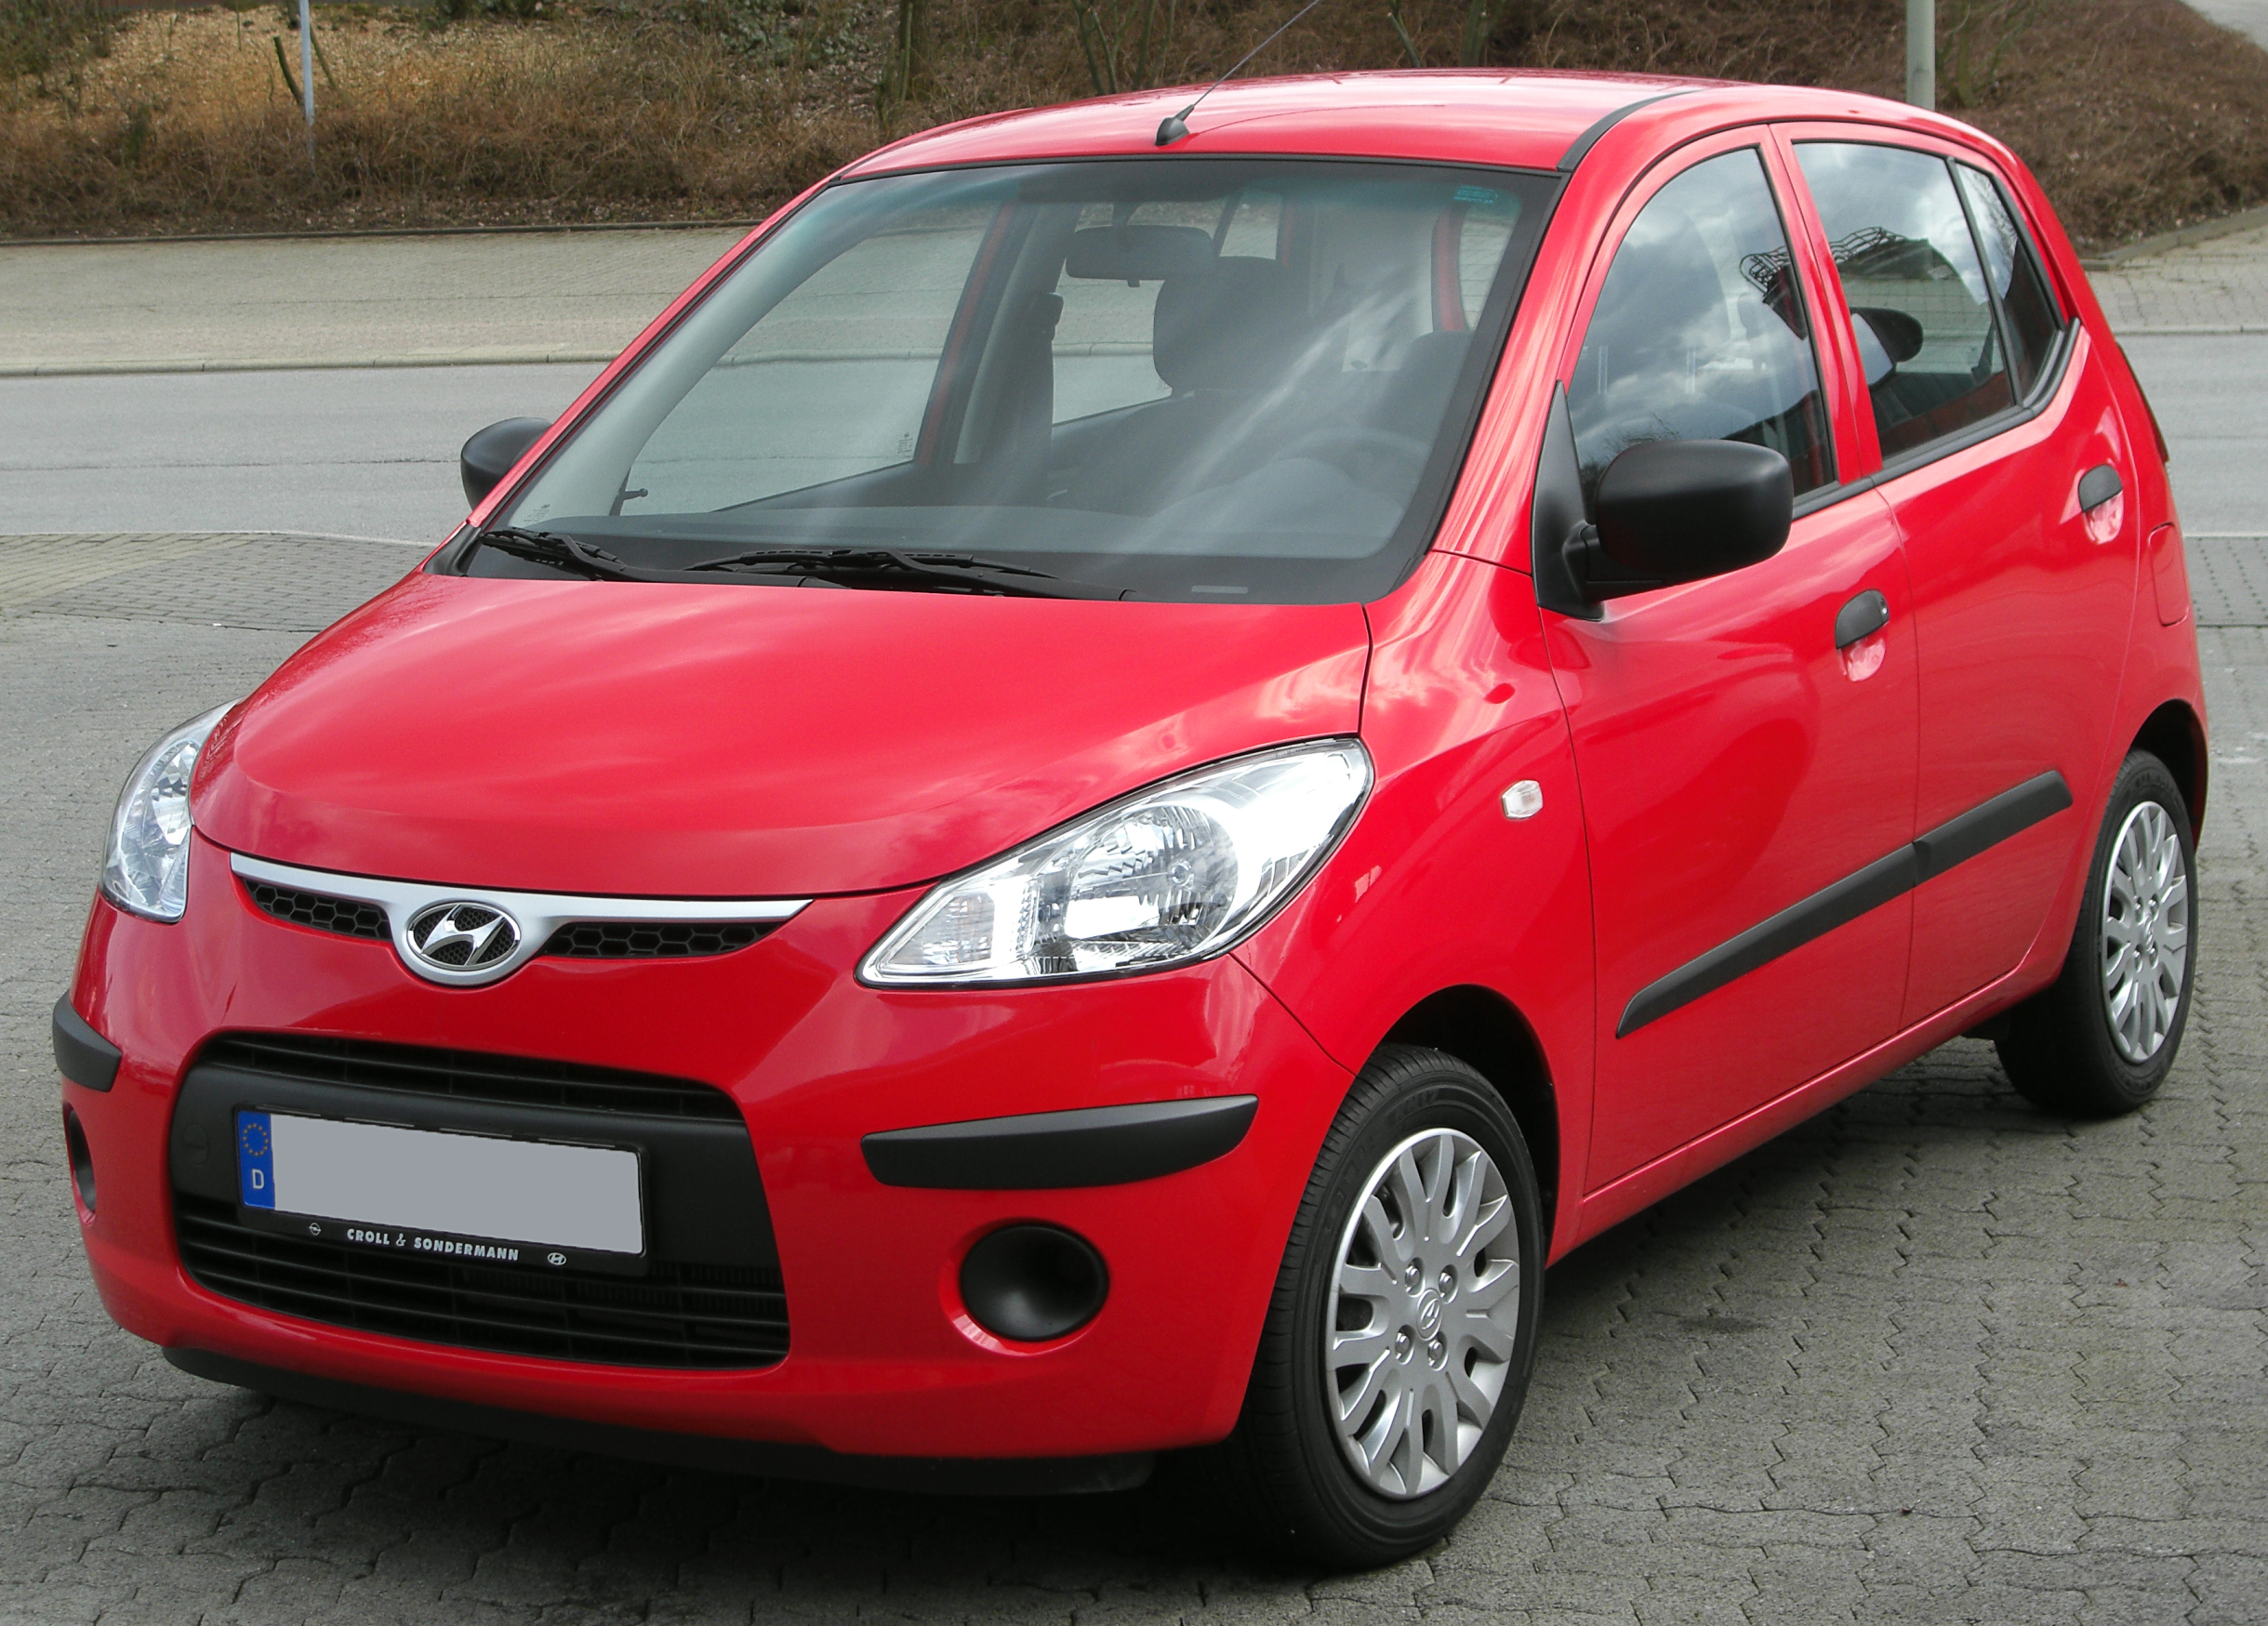 Hyundai i10 photo - 2